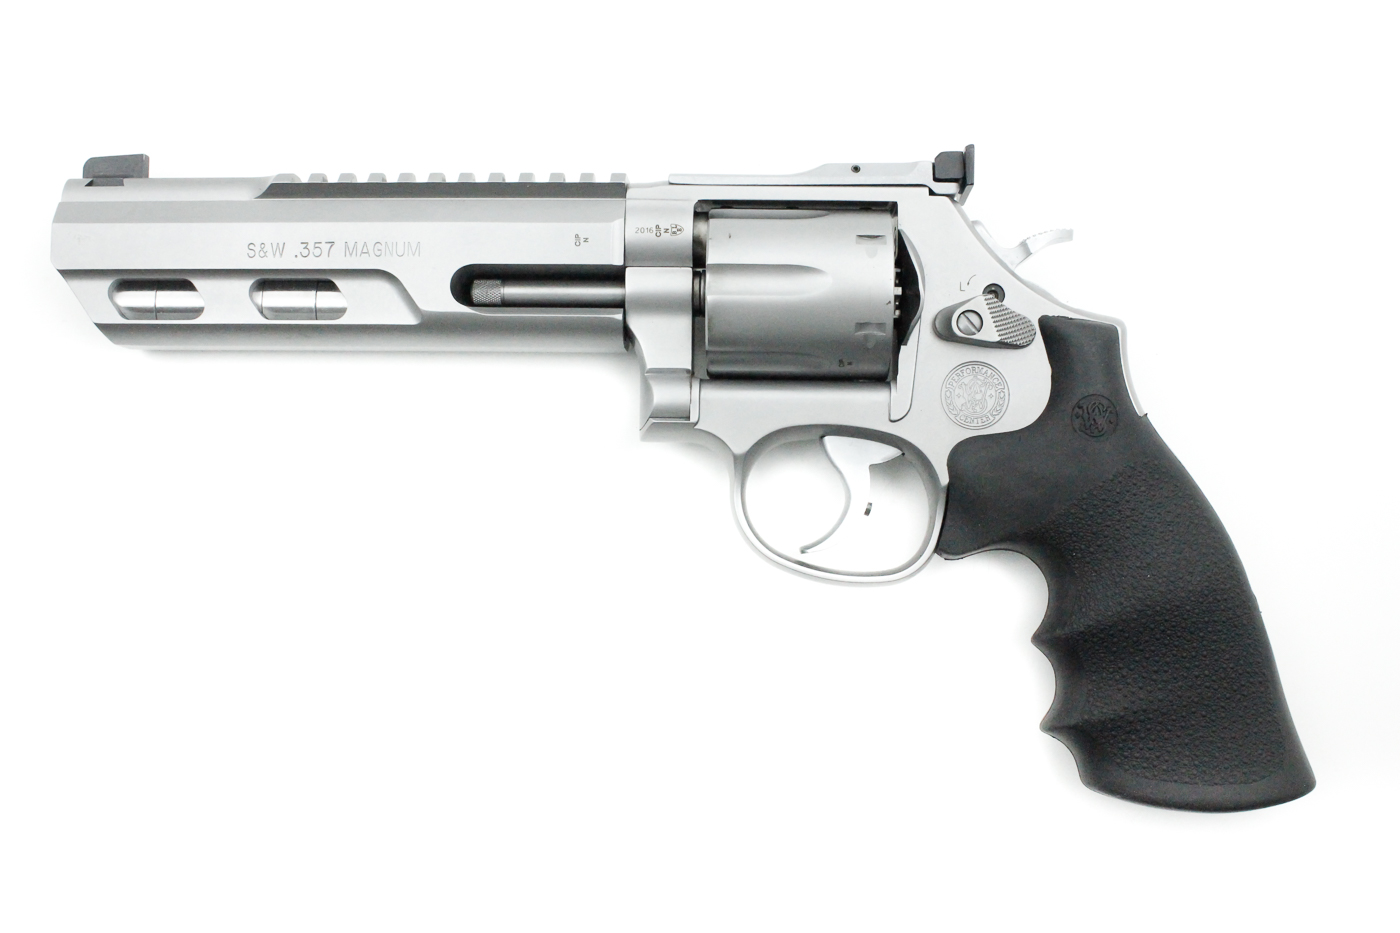 Smith & Wesson 686 Competitor, .357 Magnum - Image 1